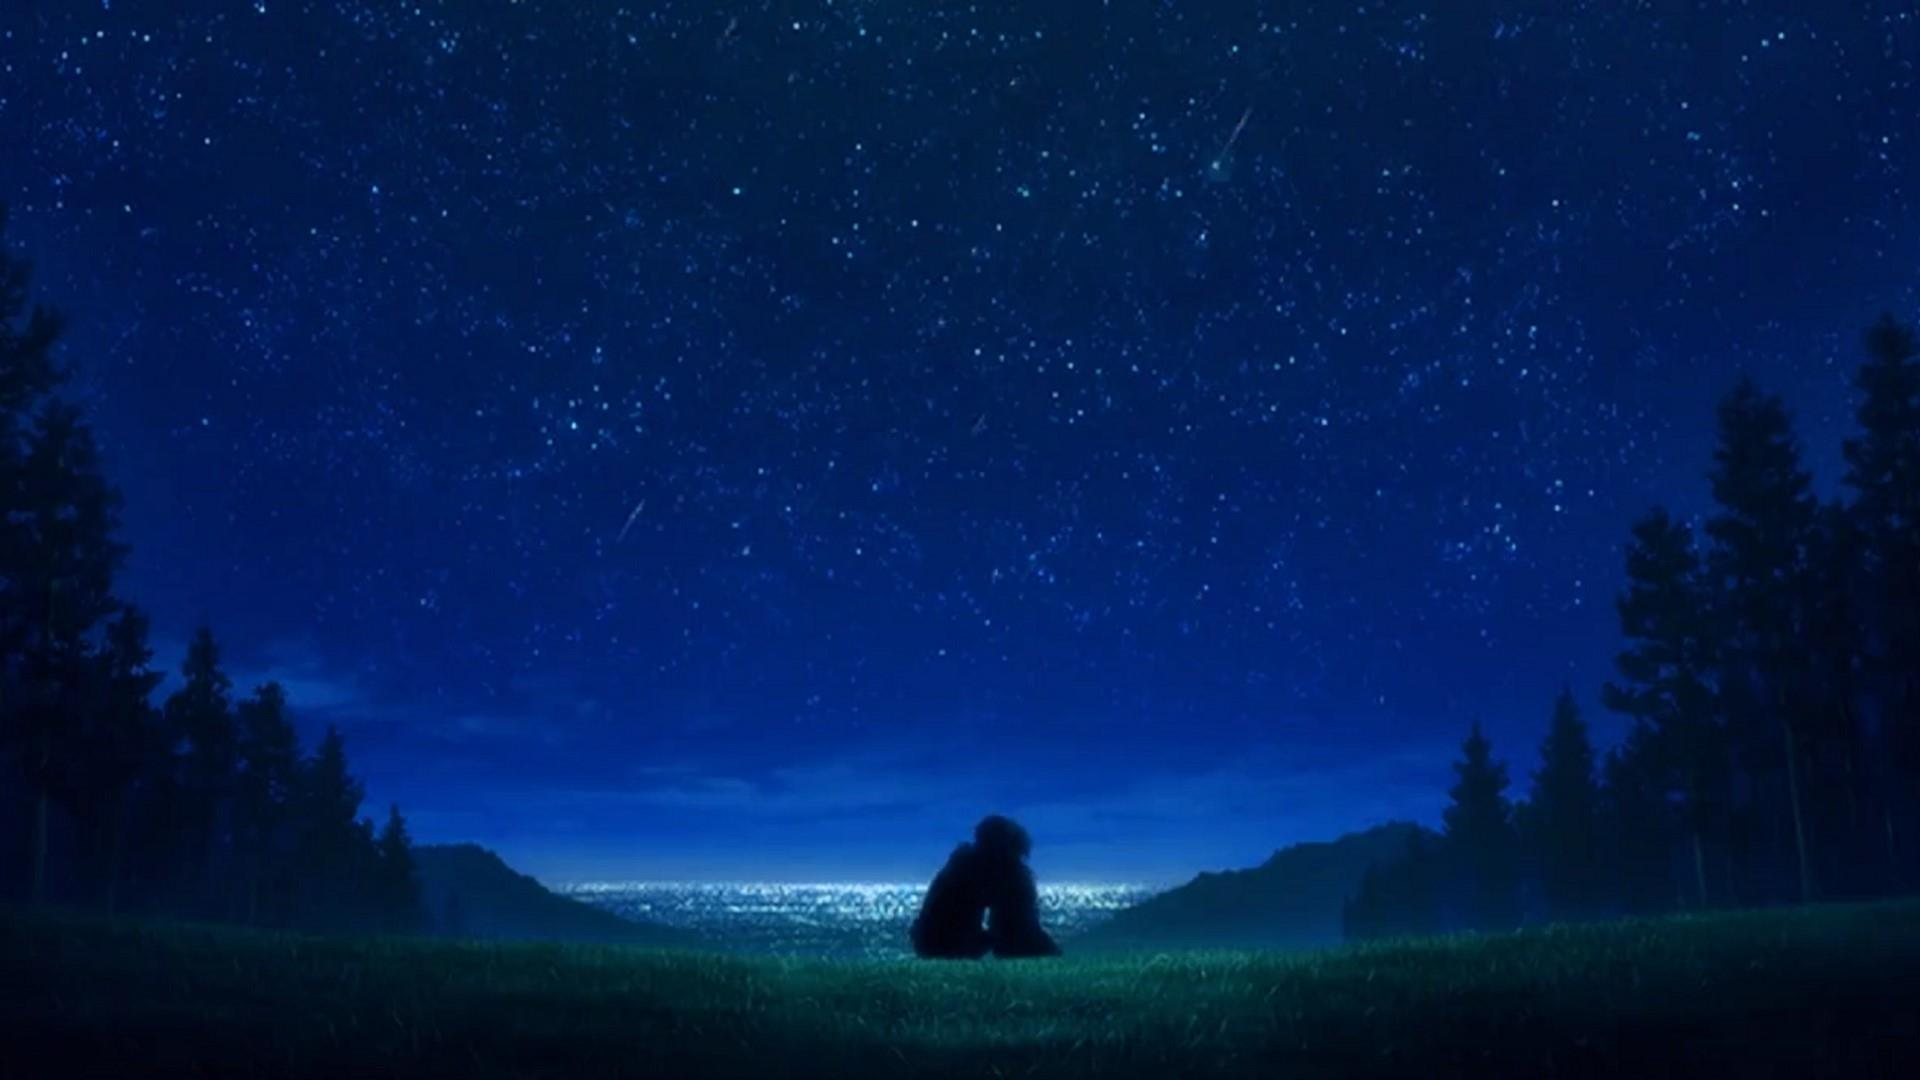 Anime Night Wallpapers - Wallpaper Cave